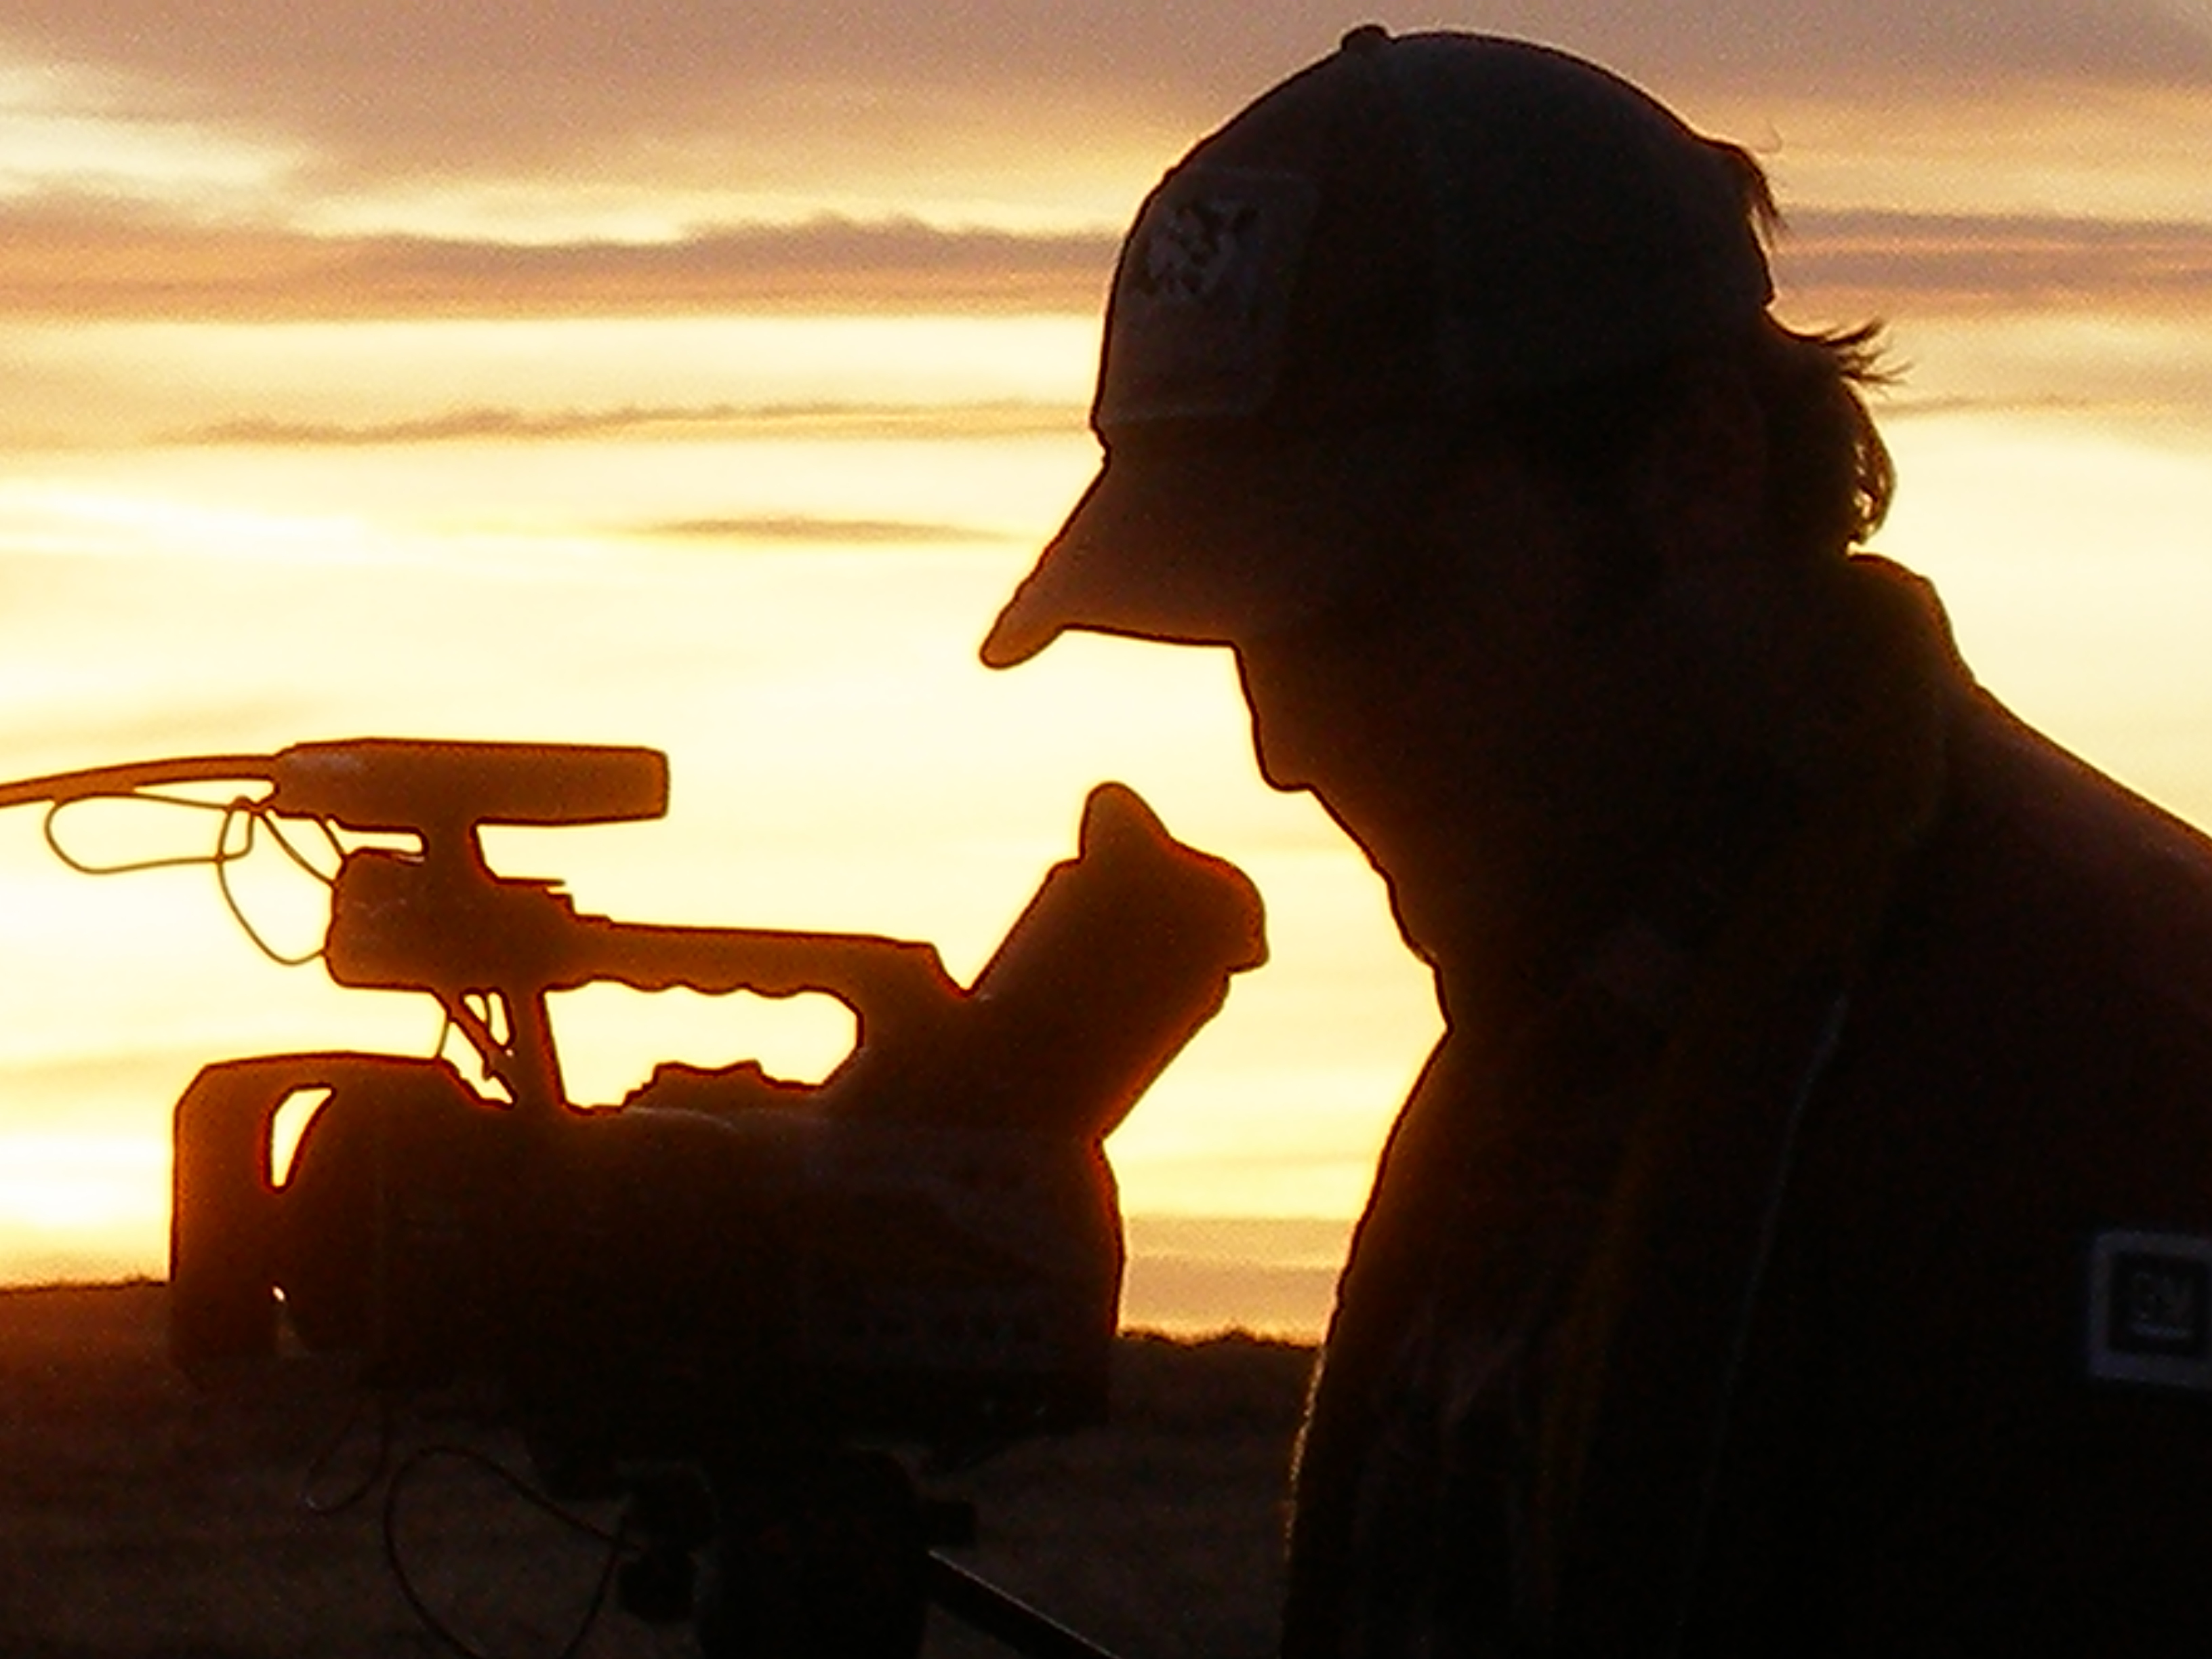 David Marek – Film Maker